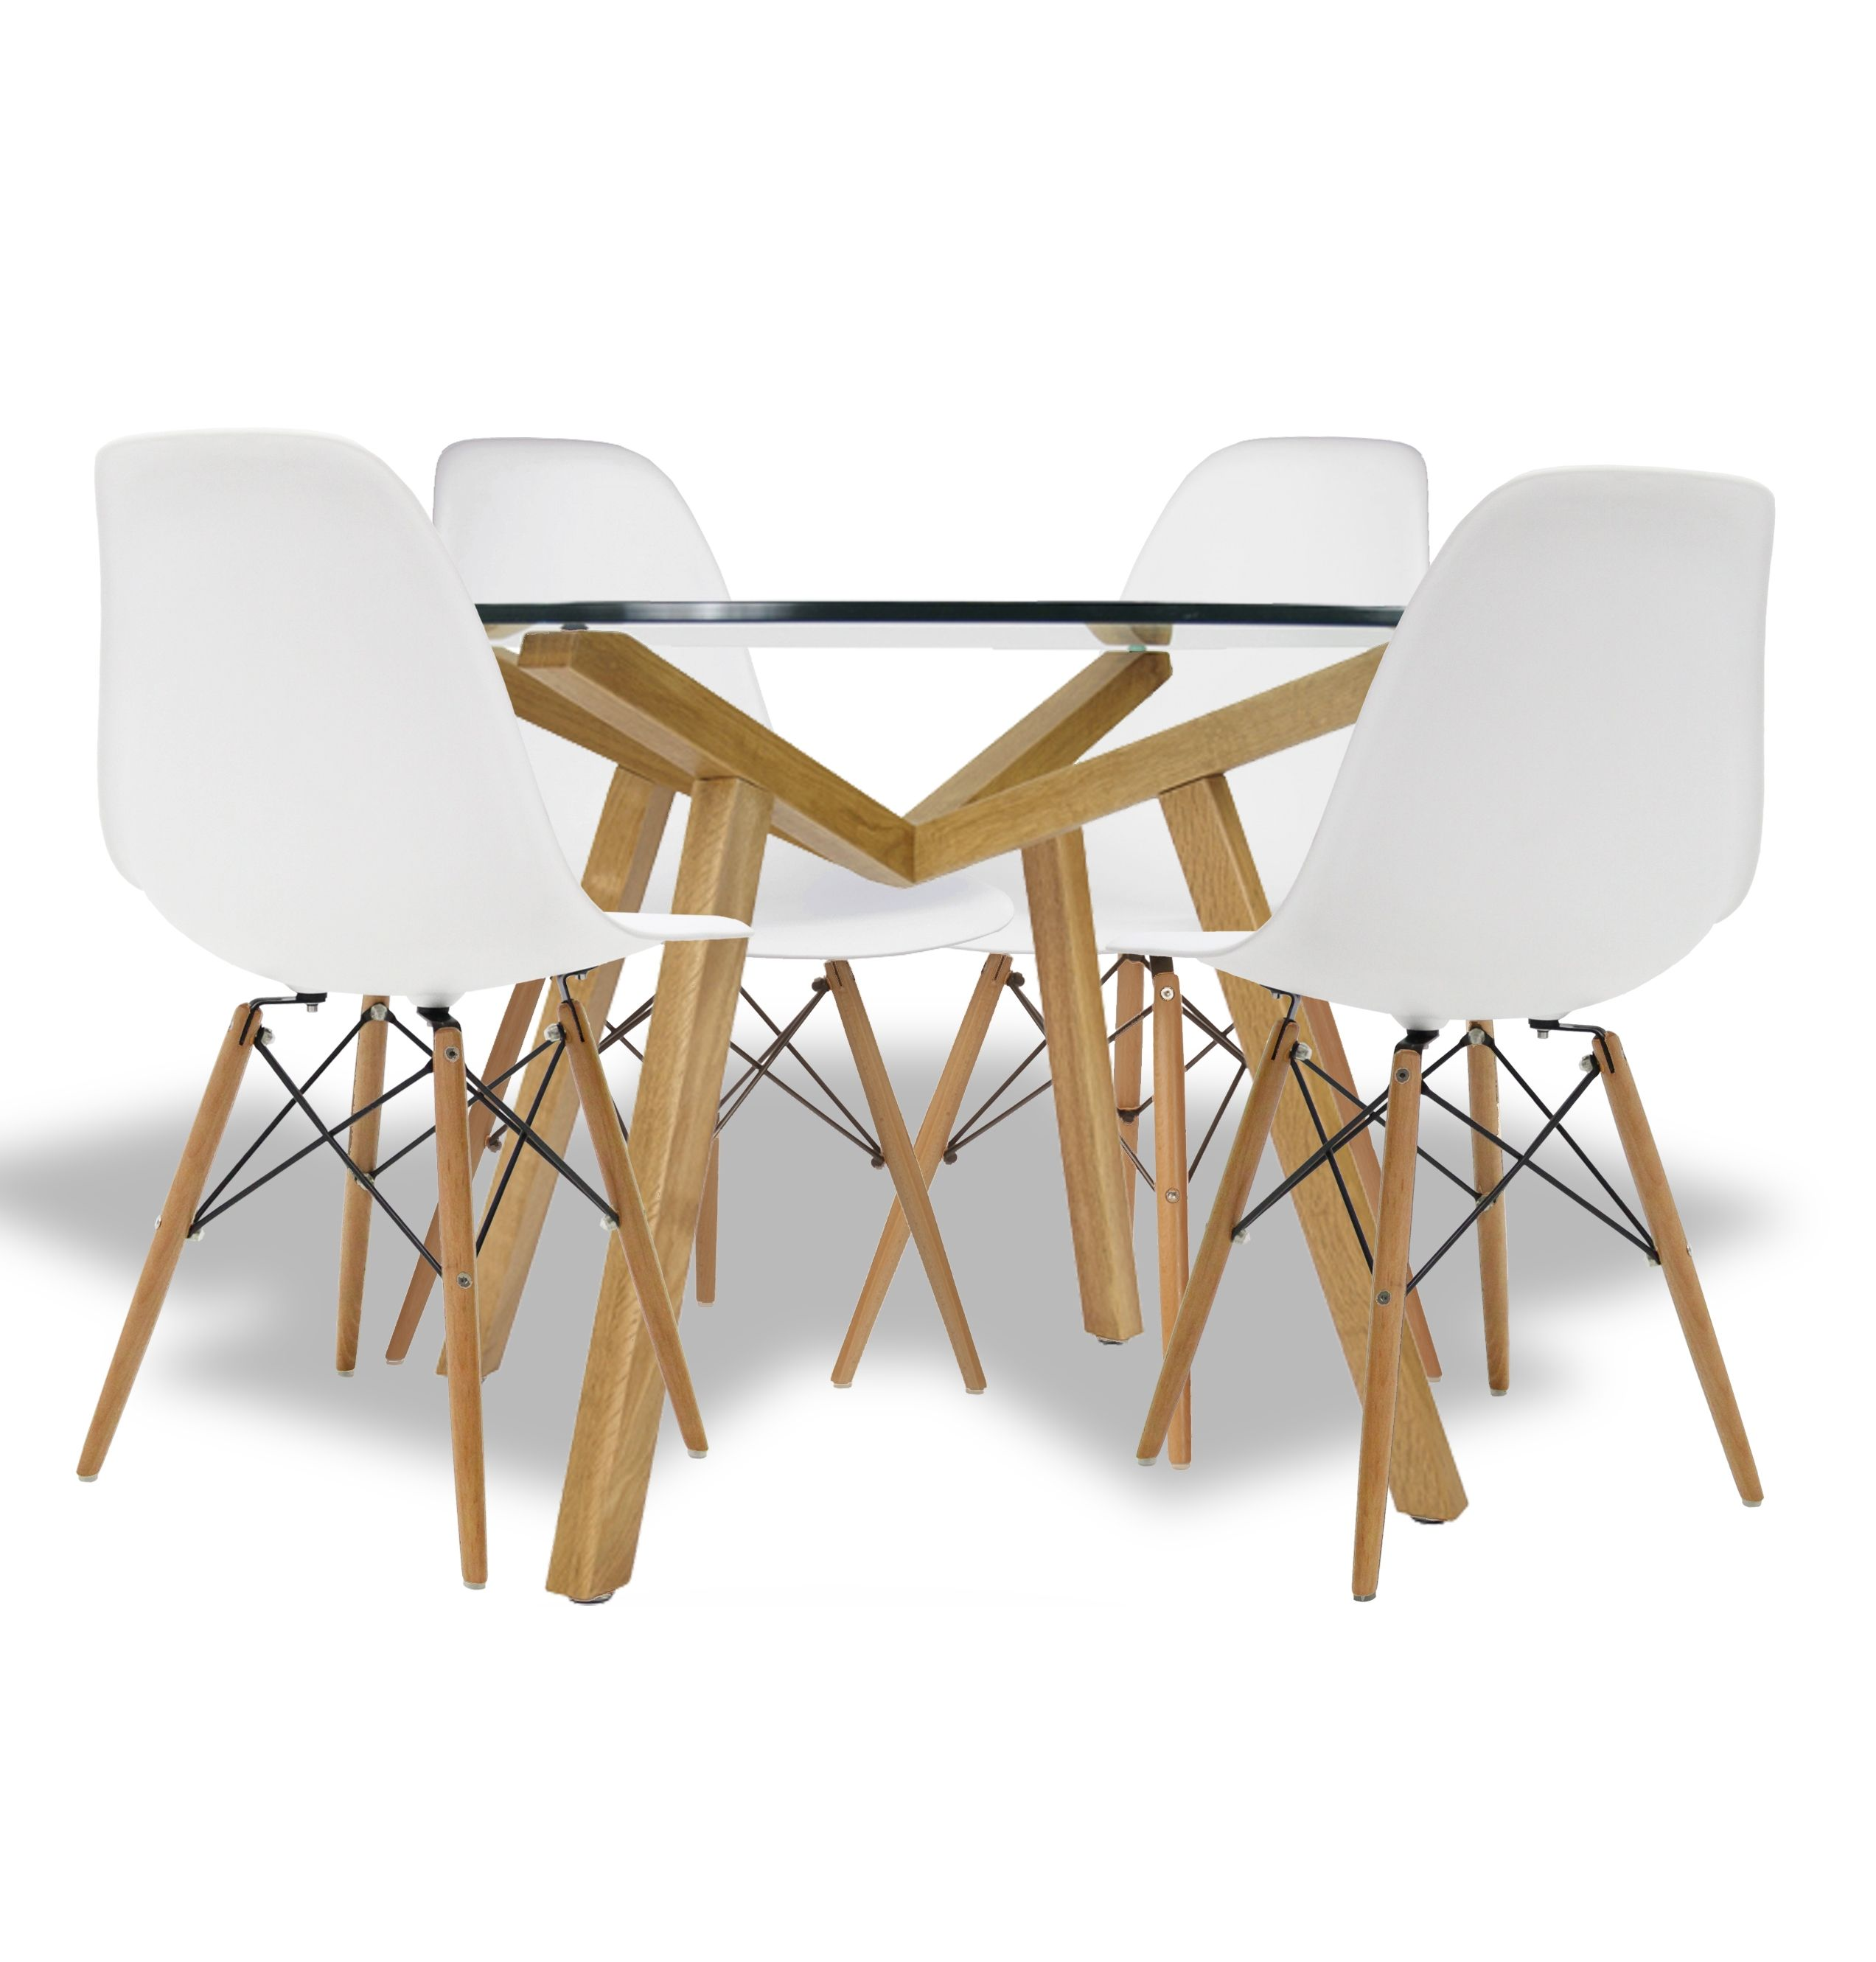 replica eames group standard aluminium chair cf. Buy Neato Dining Package In Wood Online Today! Matt Blatt Offers A Wide Range Of Stylish Designer \u0026 Replica Furniture For Any Home Or Office. Eames Group Standard Aluminium Chair Cf